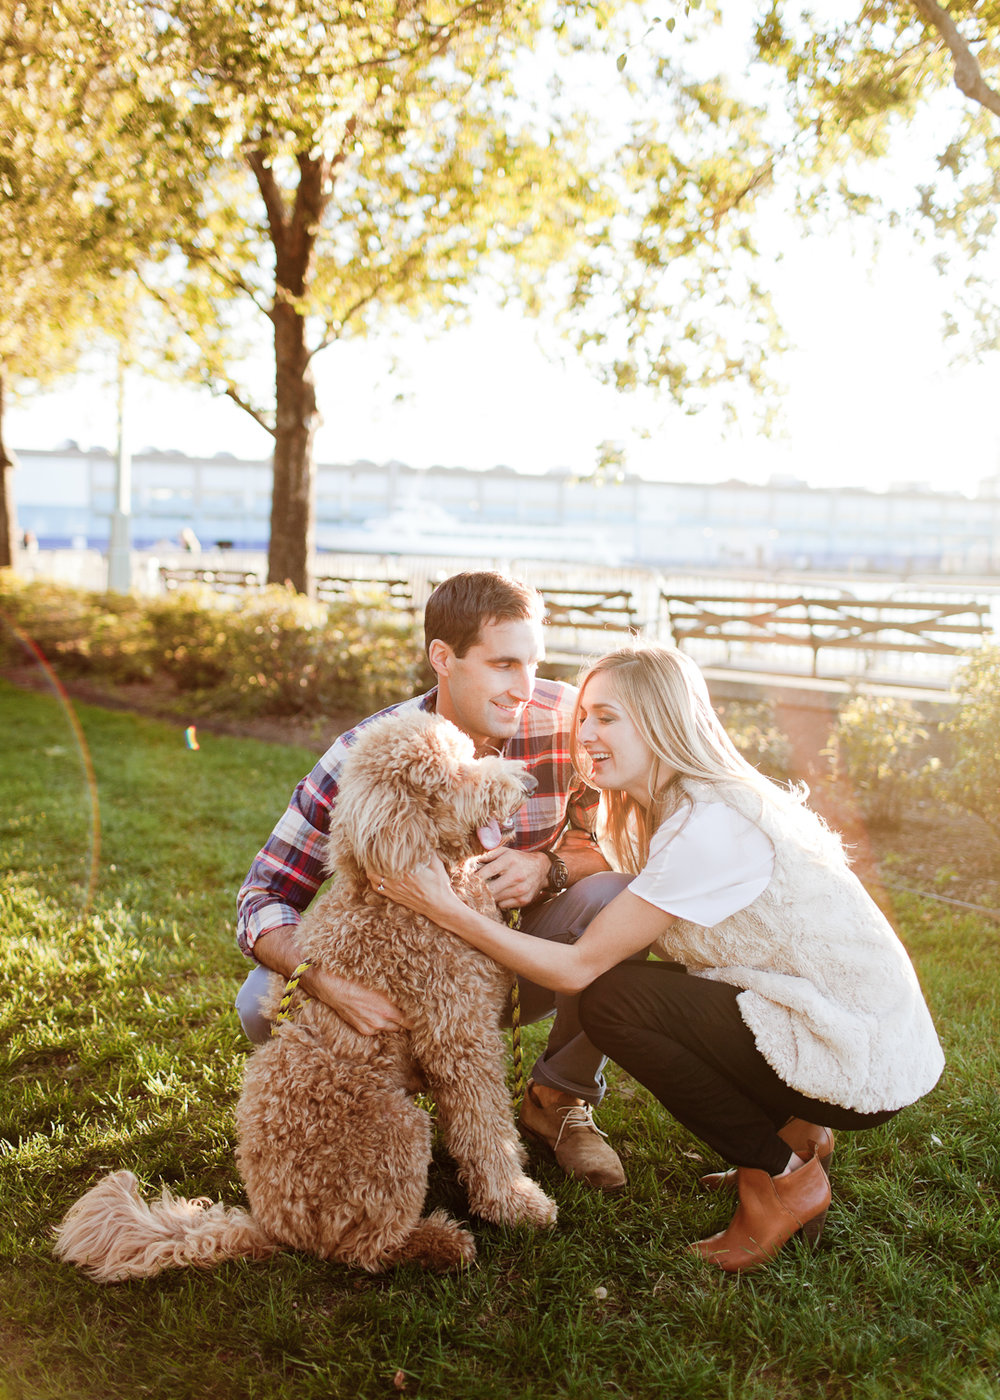 Melissa Kruse Photography - Daniece & Chris West Village Engagement Photos-148.jpg